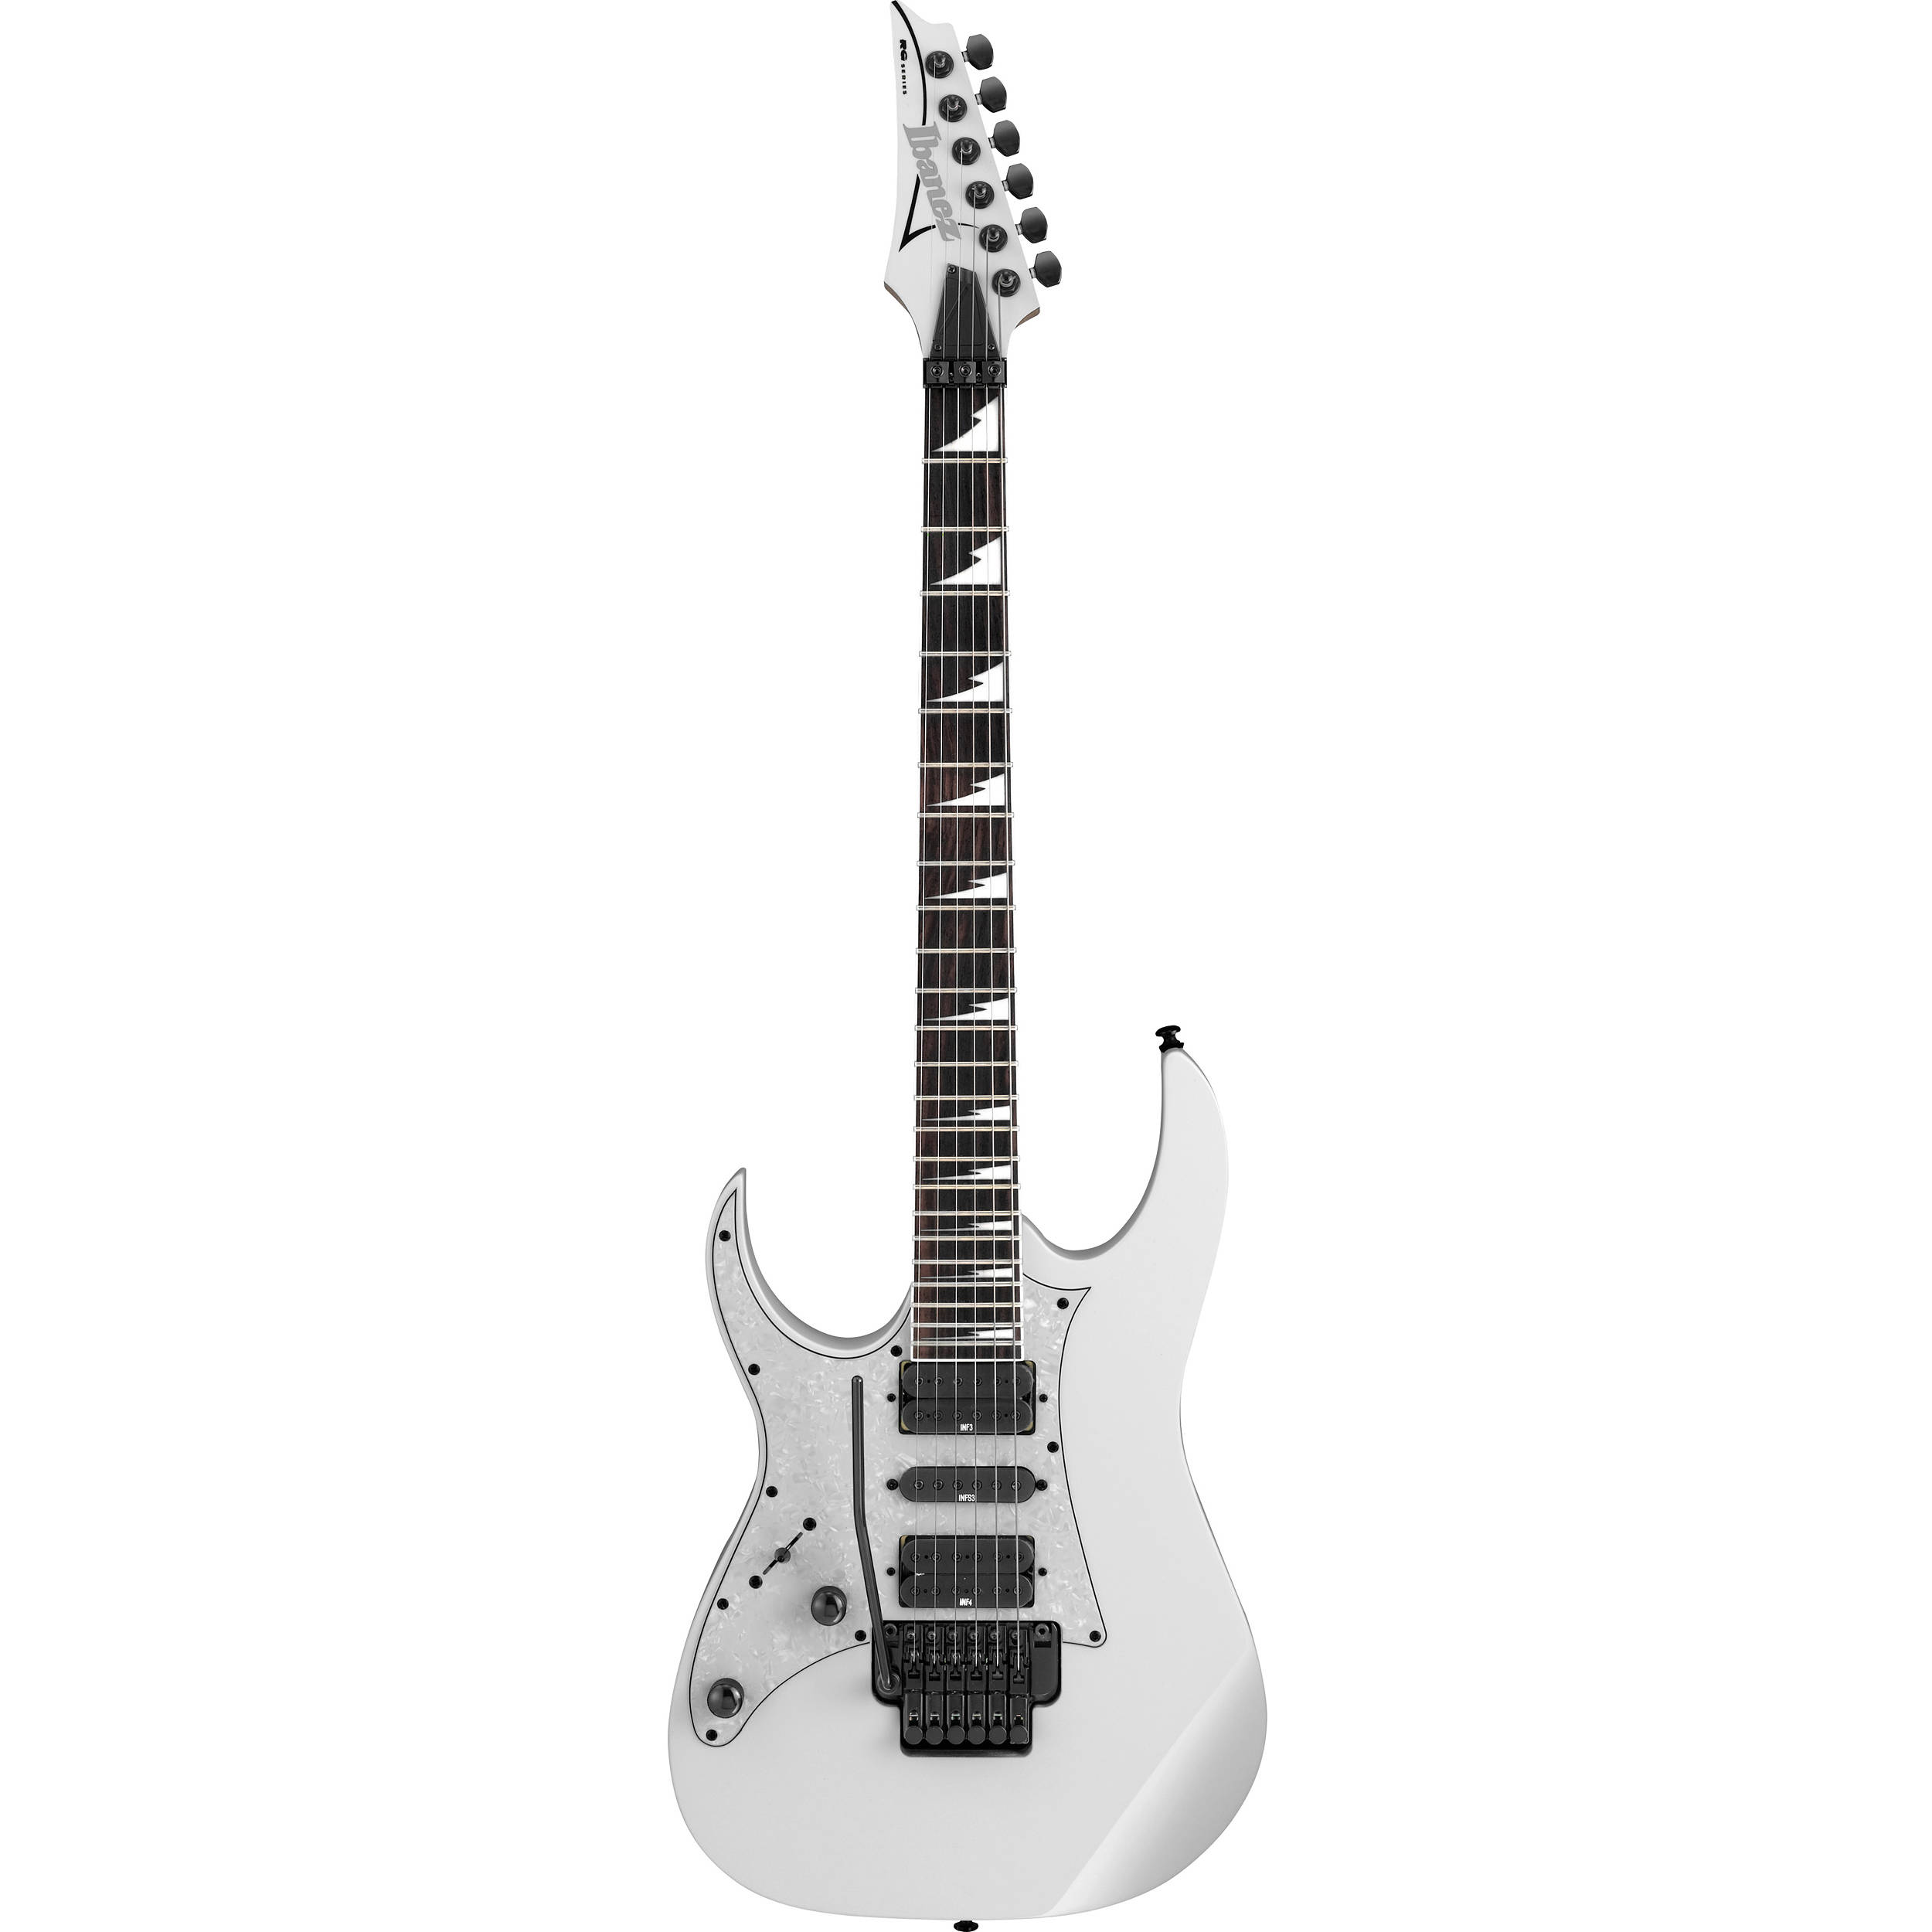 Ibanez Rg450dxbl Rg Series Electric Guitar Rg450dxbwhl B H Photo